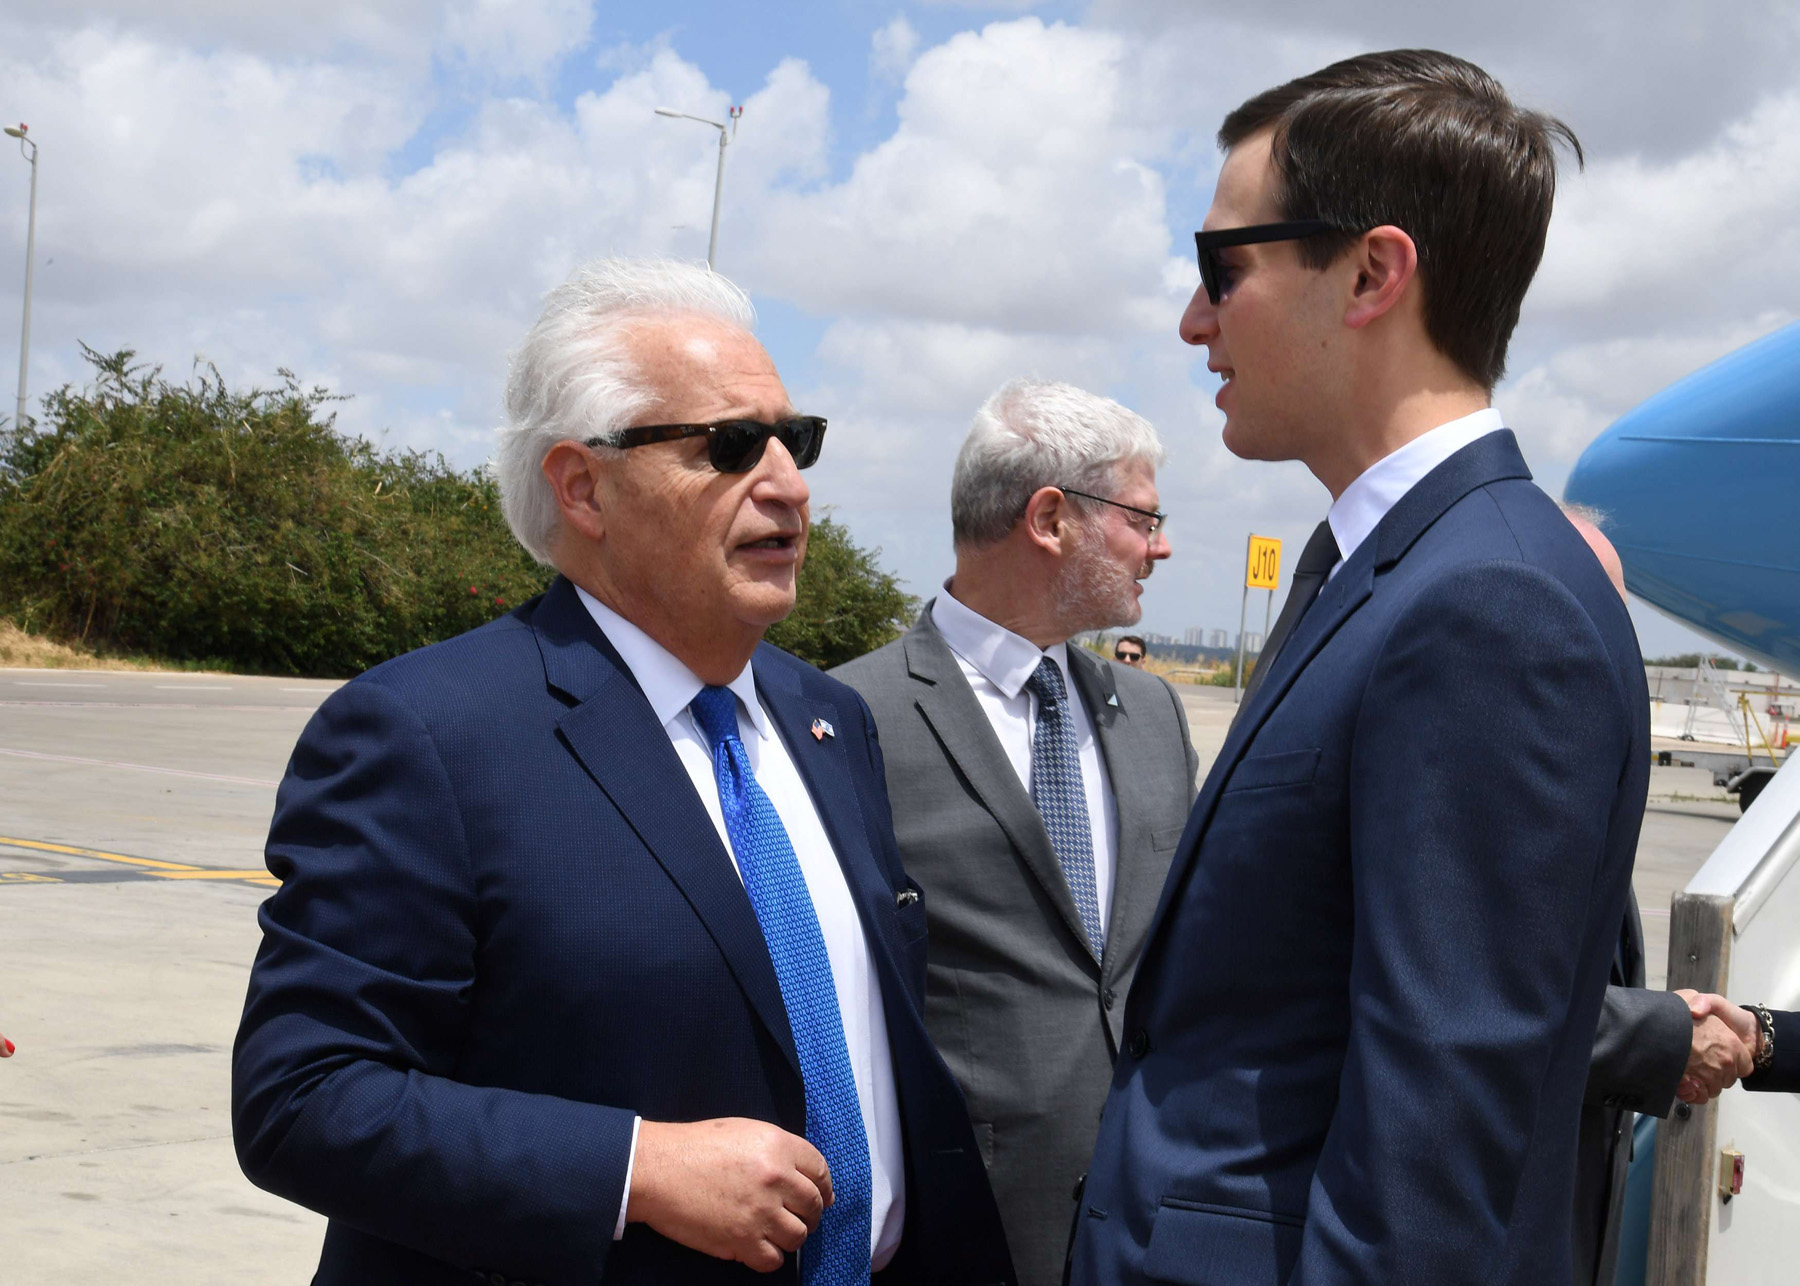 Heavy bias. A 2018 file picture shows White House senior adviser Jared Kushner (R) speaking with US Ambassador to Israel David Friedman upon Kushner's arrival at the Ben Gurion Airport, Israel. (Reuters)